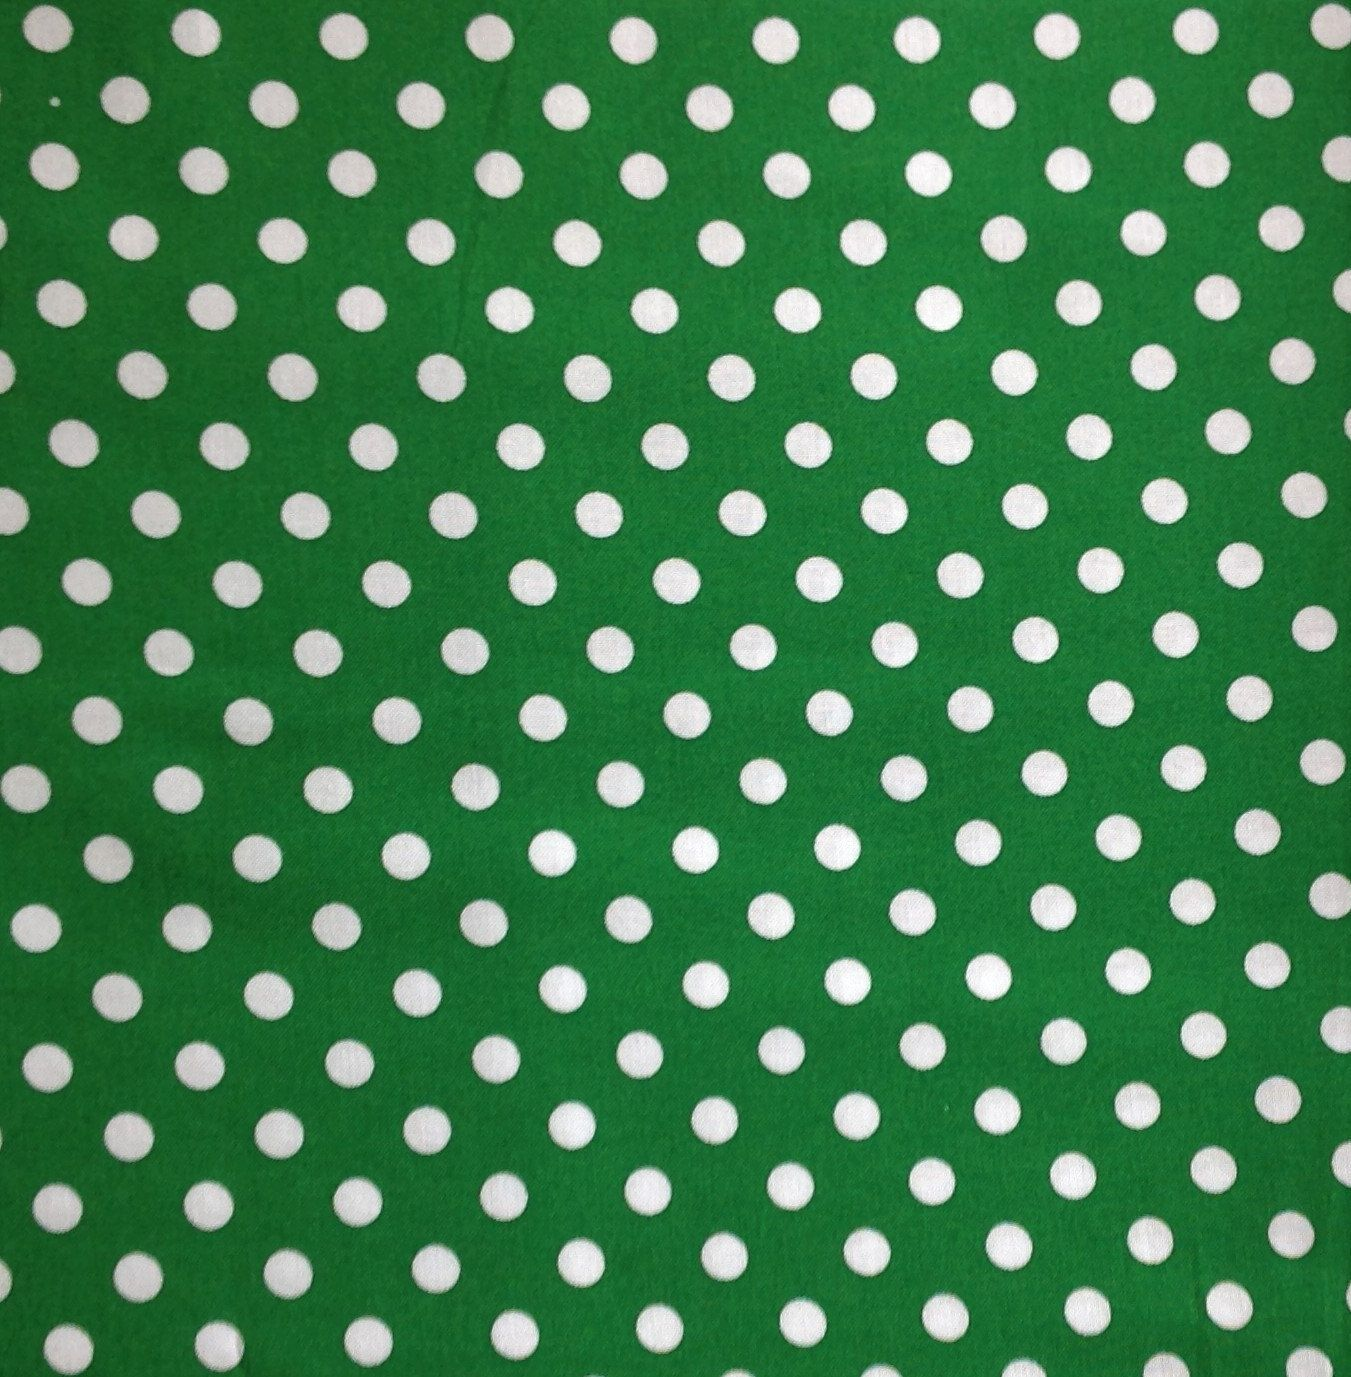 Big Dot Kelly Green Cotton Fabric Green Cotton Fabric Polka Dot Fabric White Polka Dot Fabric Dotted Fabric Polka Dot Fabric Green Cotton